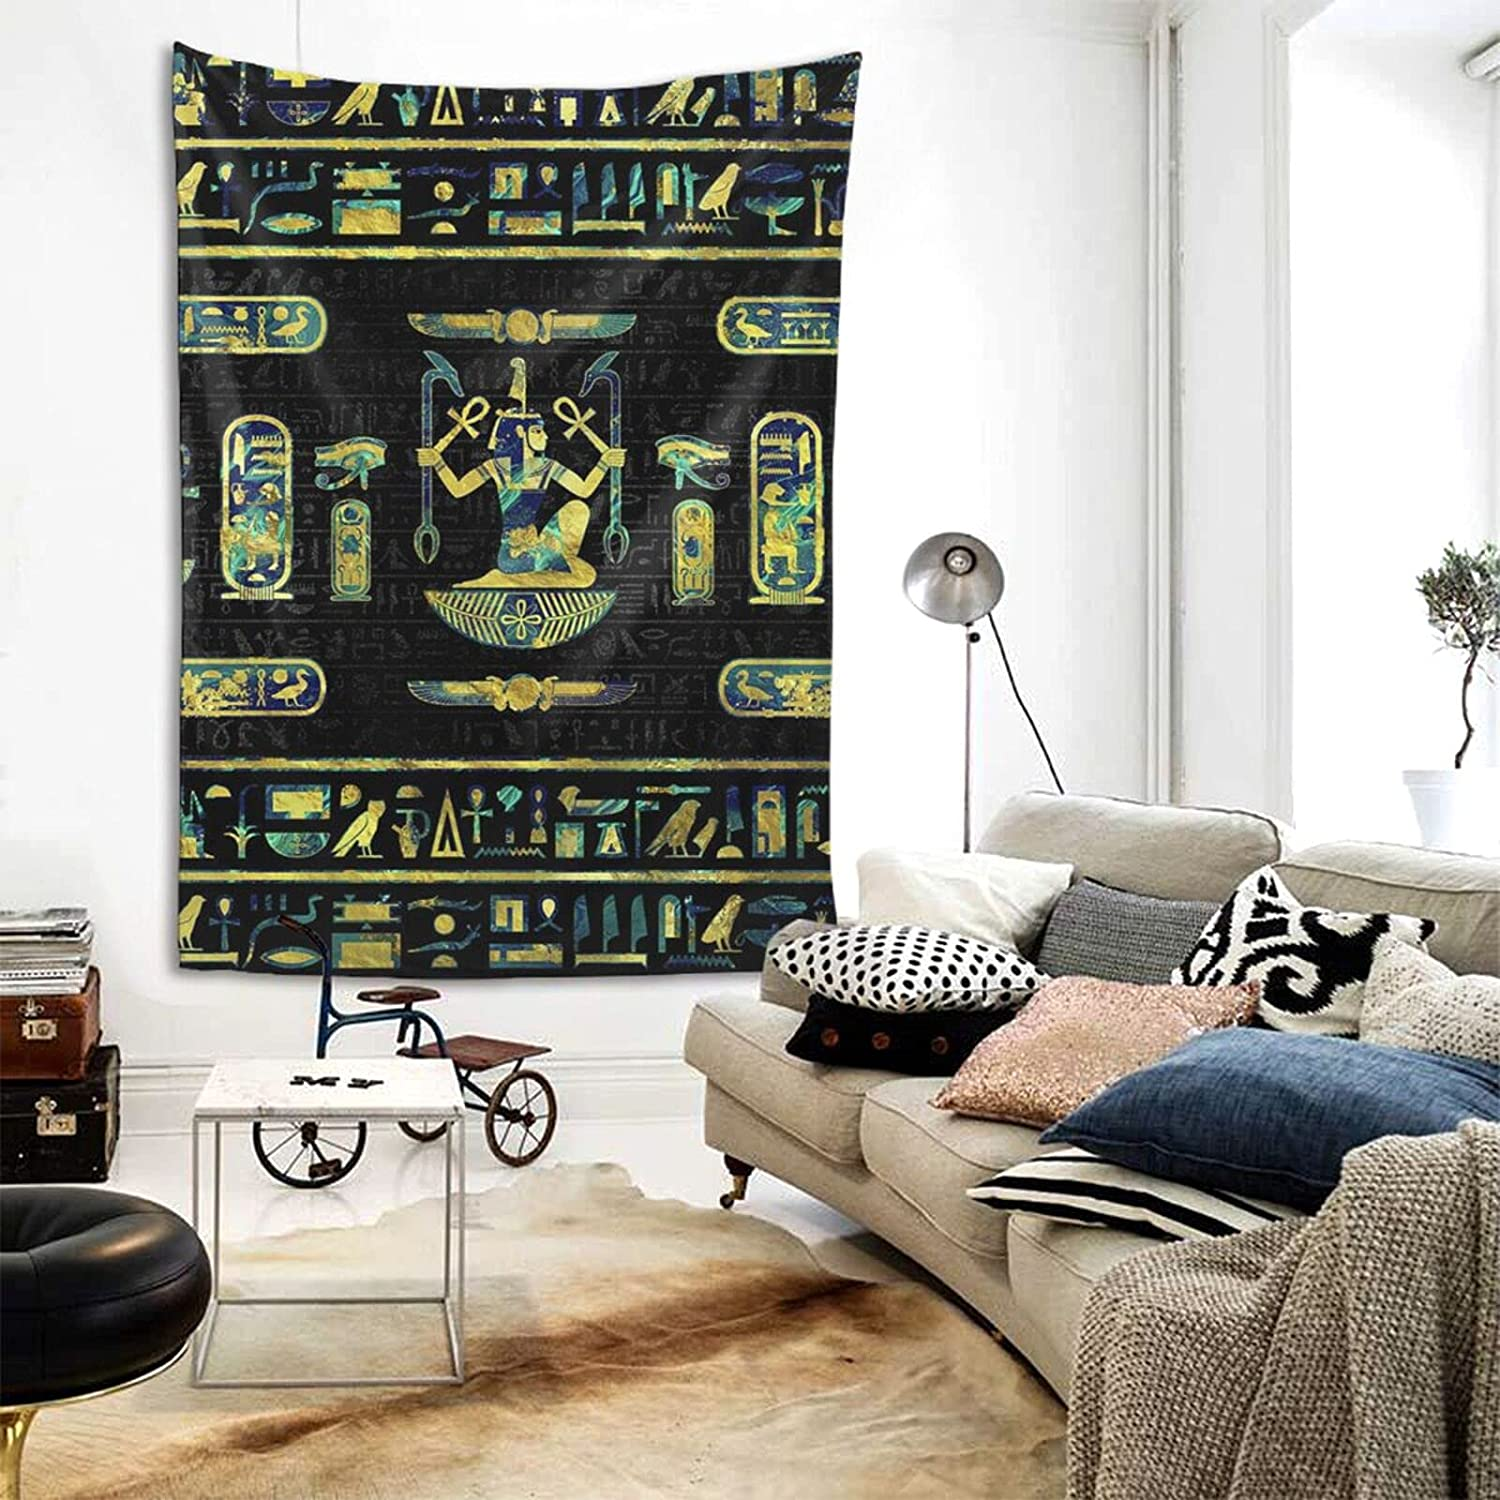 KAETZRU Wall Hanging Decoration Tapestries Max 63% OFF X Egyptian Inch Limited Special Price 60 80